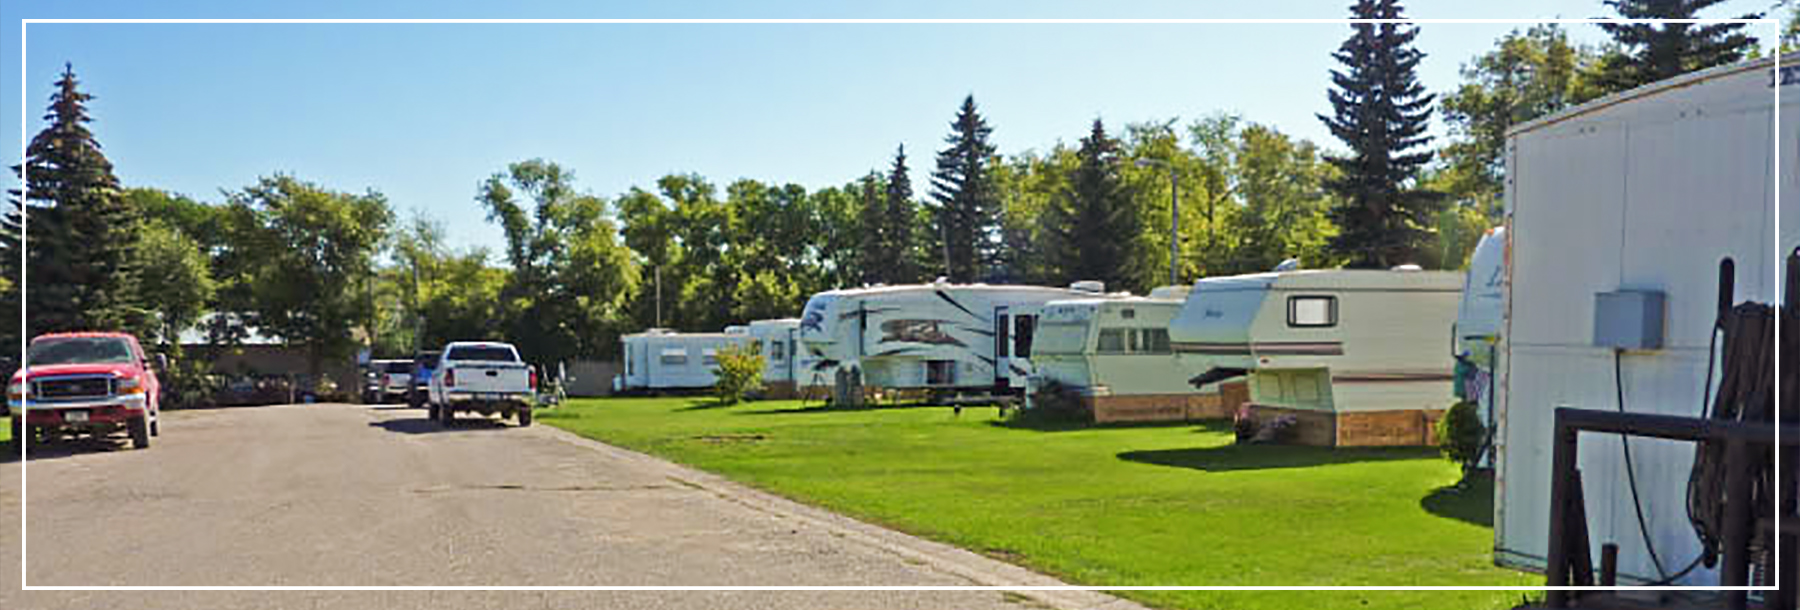 A summer time photo of several RVs on one of the lots of Stonehouse RV Park, in Stanley North Dakota.